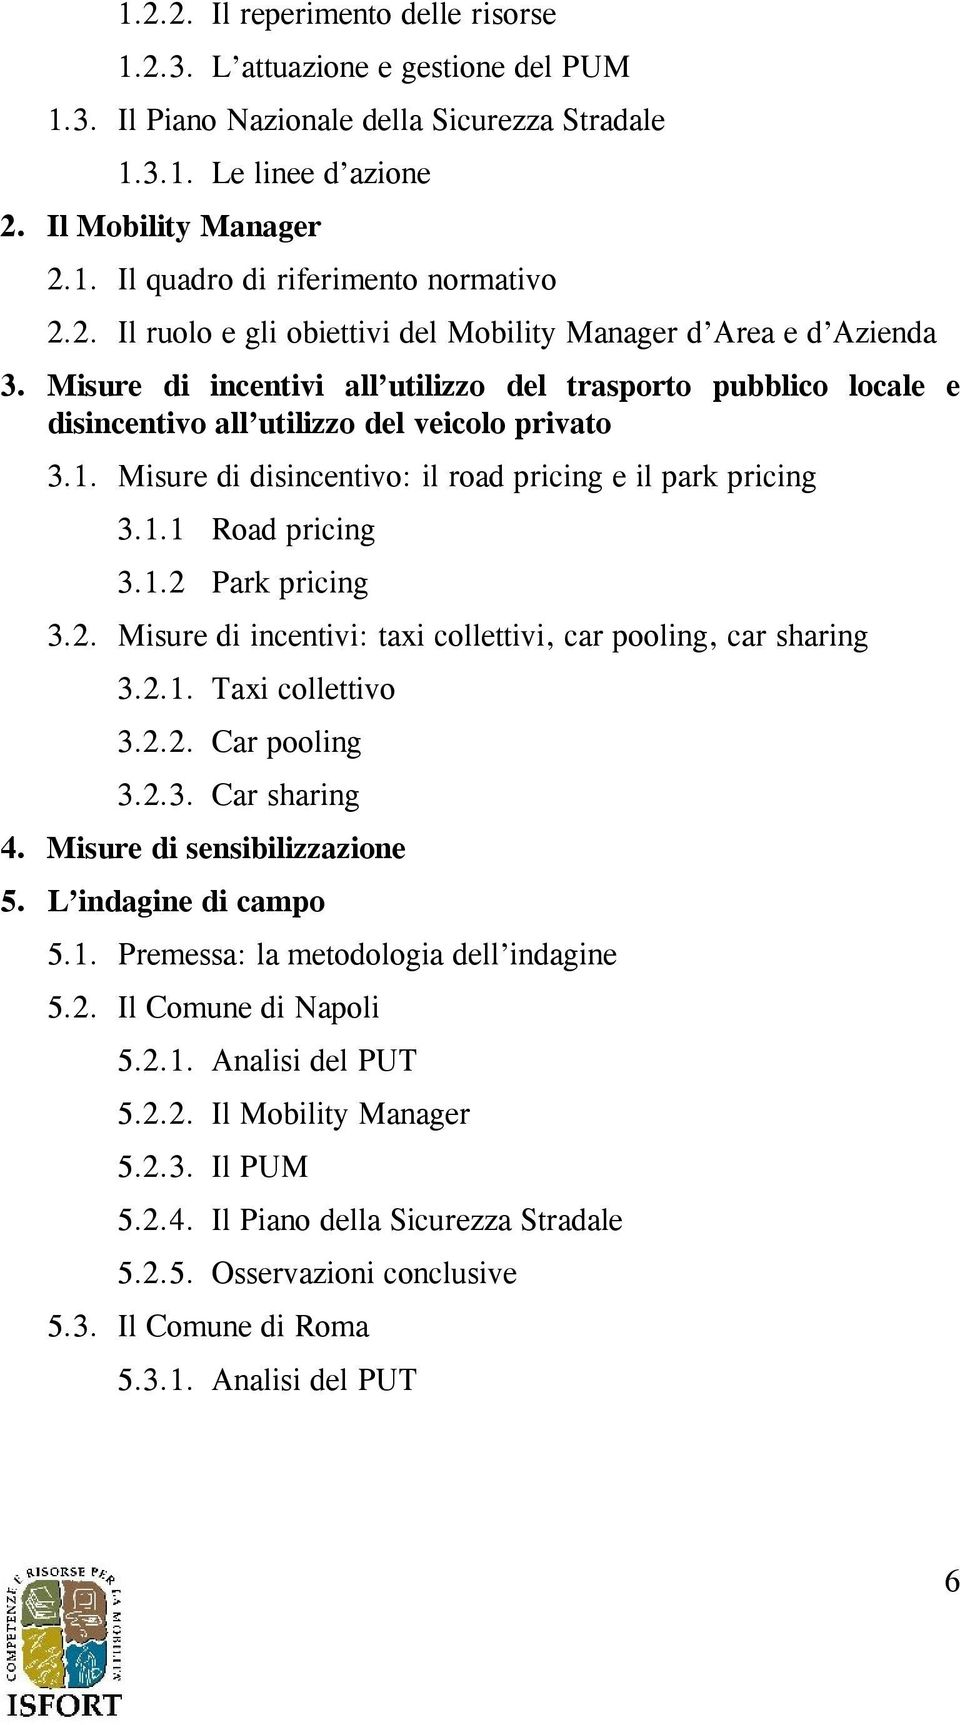 Misure di disincentivo: il road pricing e il park pricing 3.1.1 Road pricing 3.1.2 Park pricing 3.2. Misure di incentivi: taxi collettivi, car pooling, car sharing 3.2.1. Taxi collettivo 3.2.2. Car pooling 3.